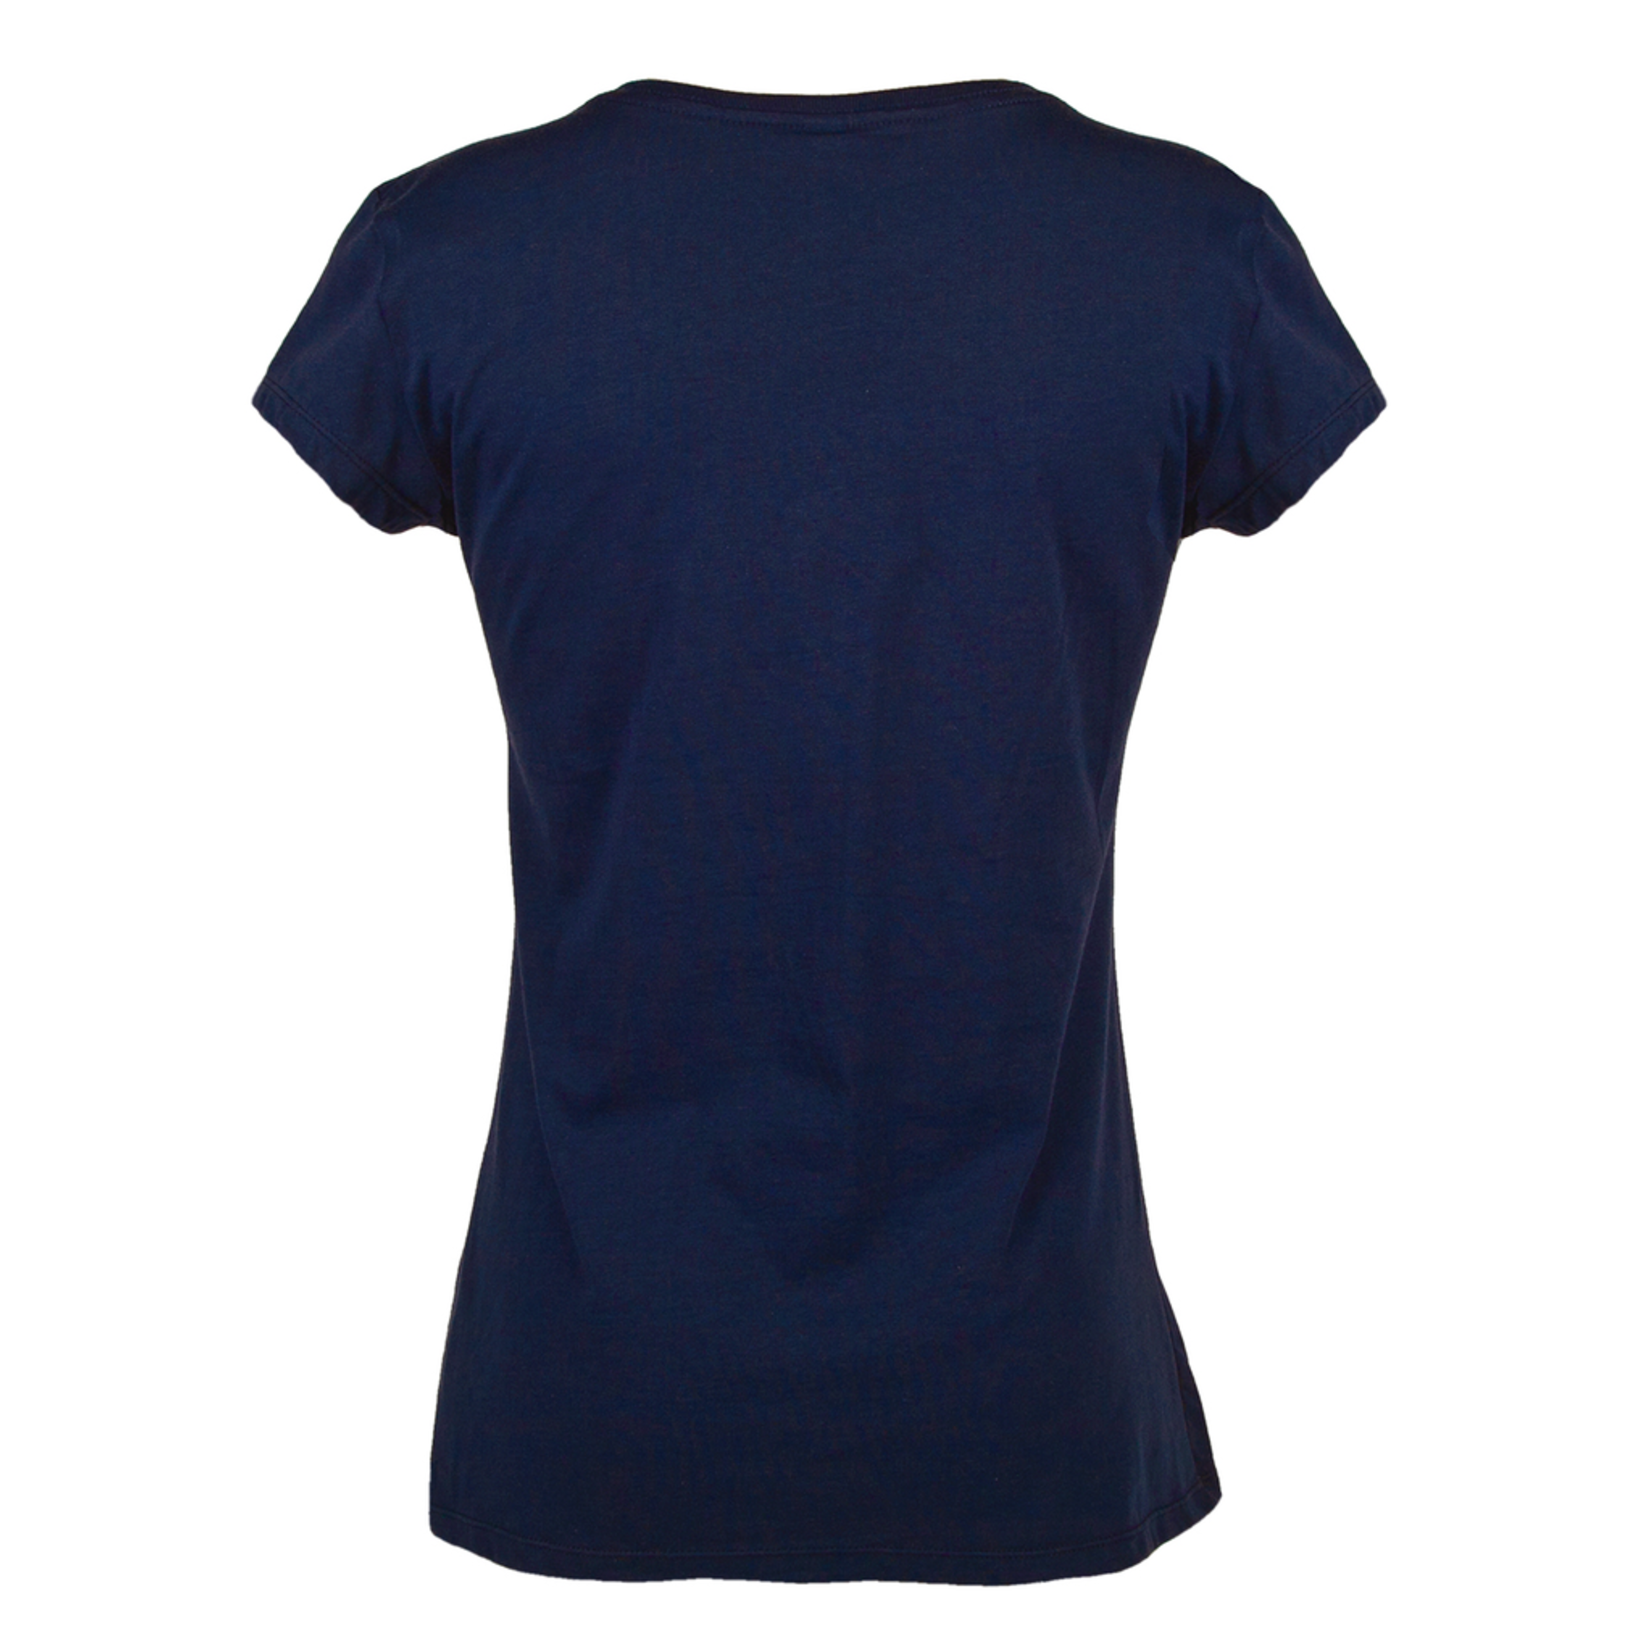 Clothing Tshirt - Fitted - Hibiscus Navy